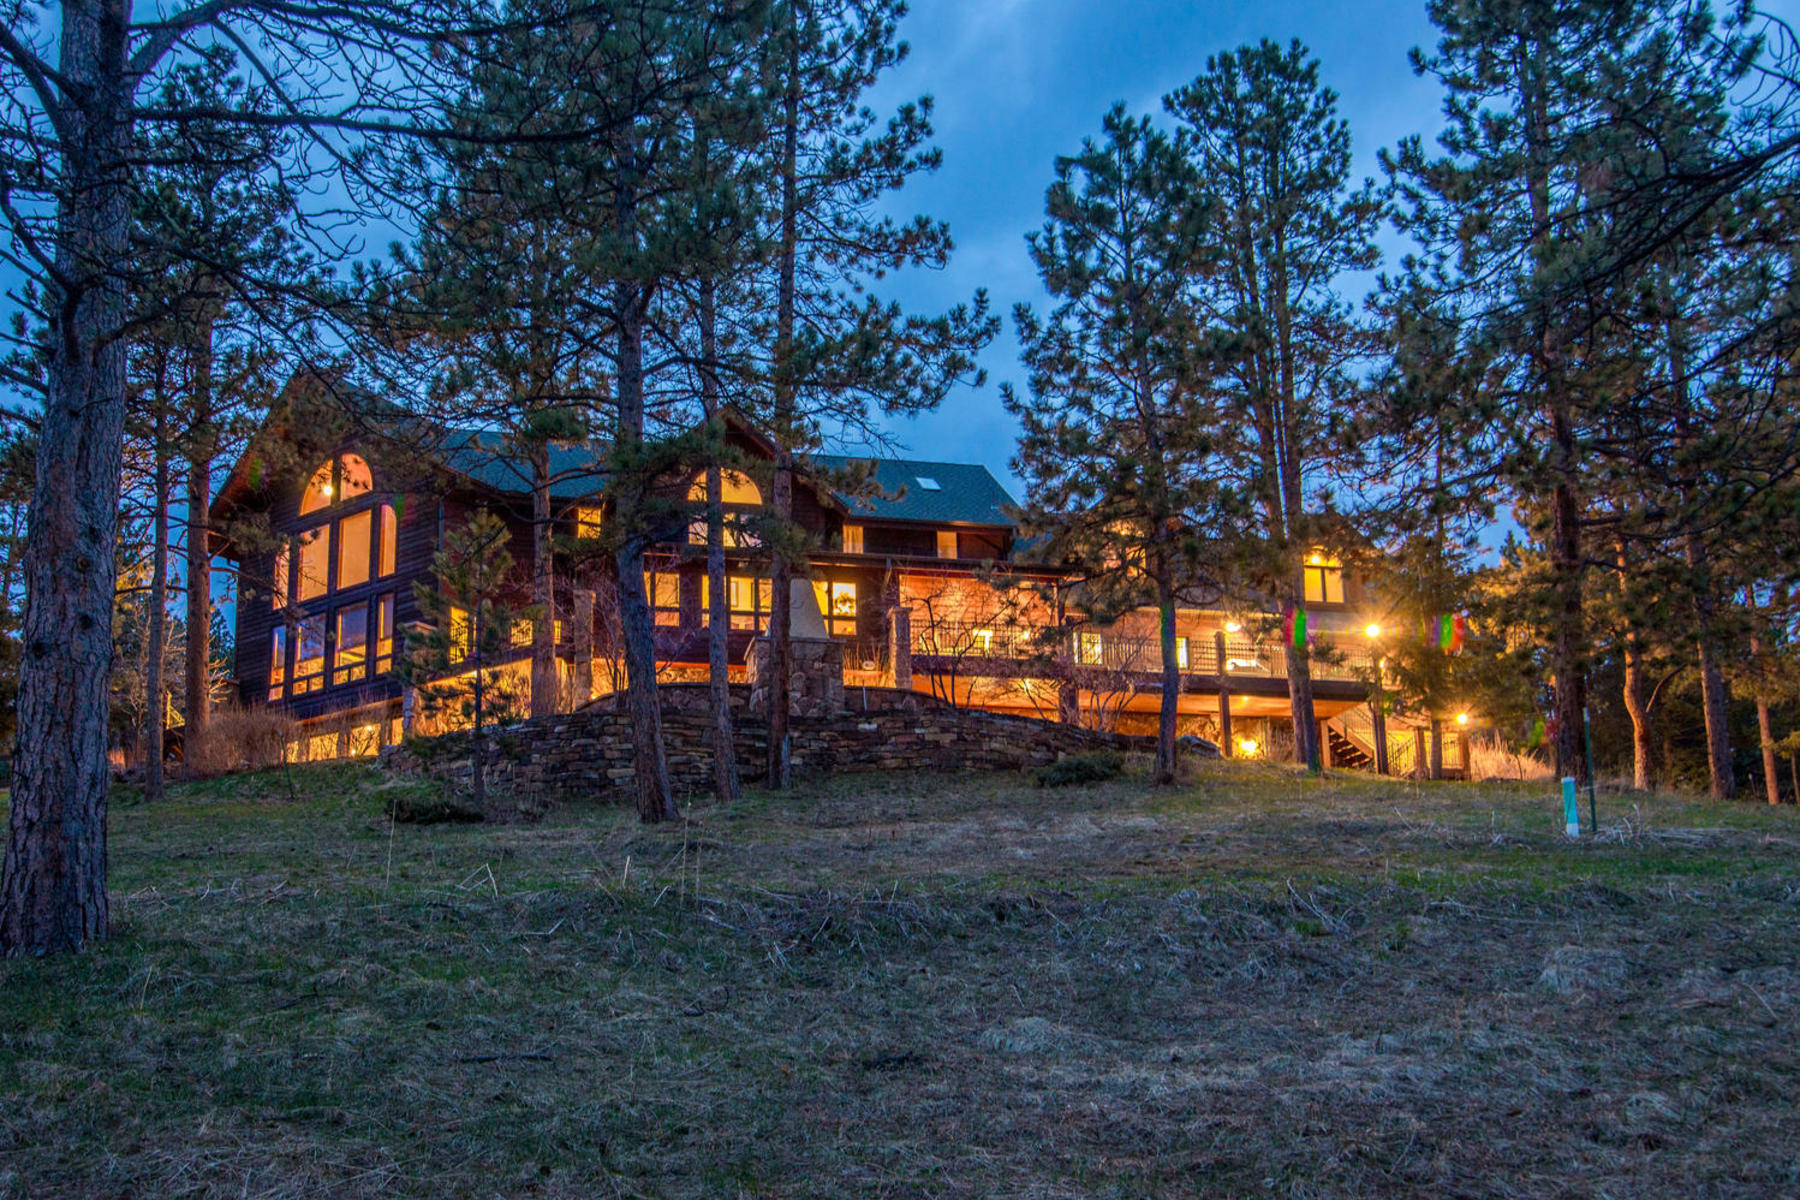 Property for Active at Majestic Estate Nestled on 42.42 Acres 28775 Cragmont Drive Evergreen, Colorado 80439 United States